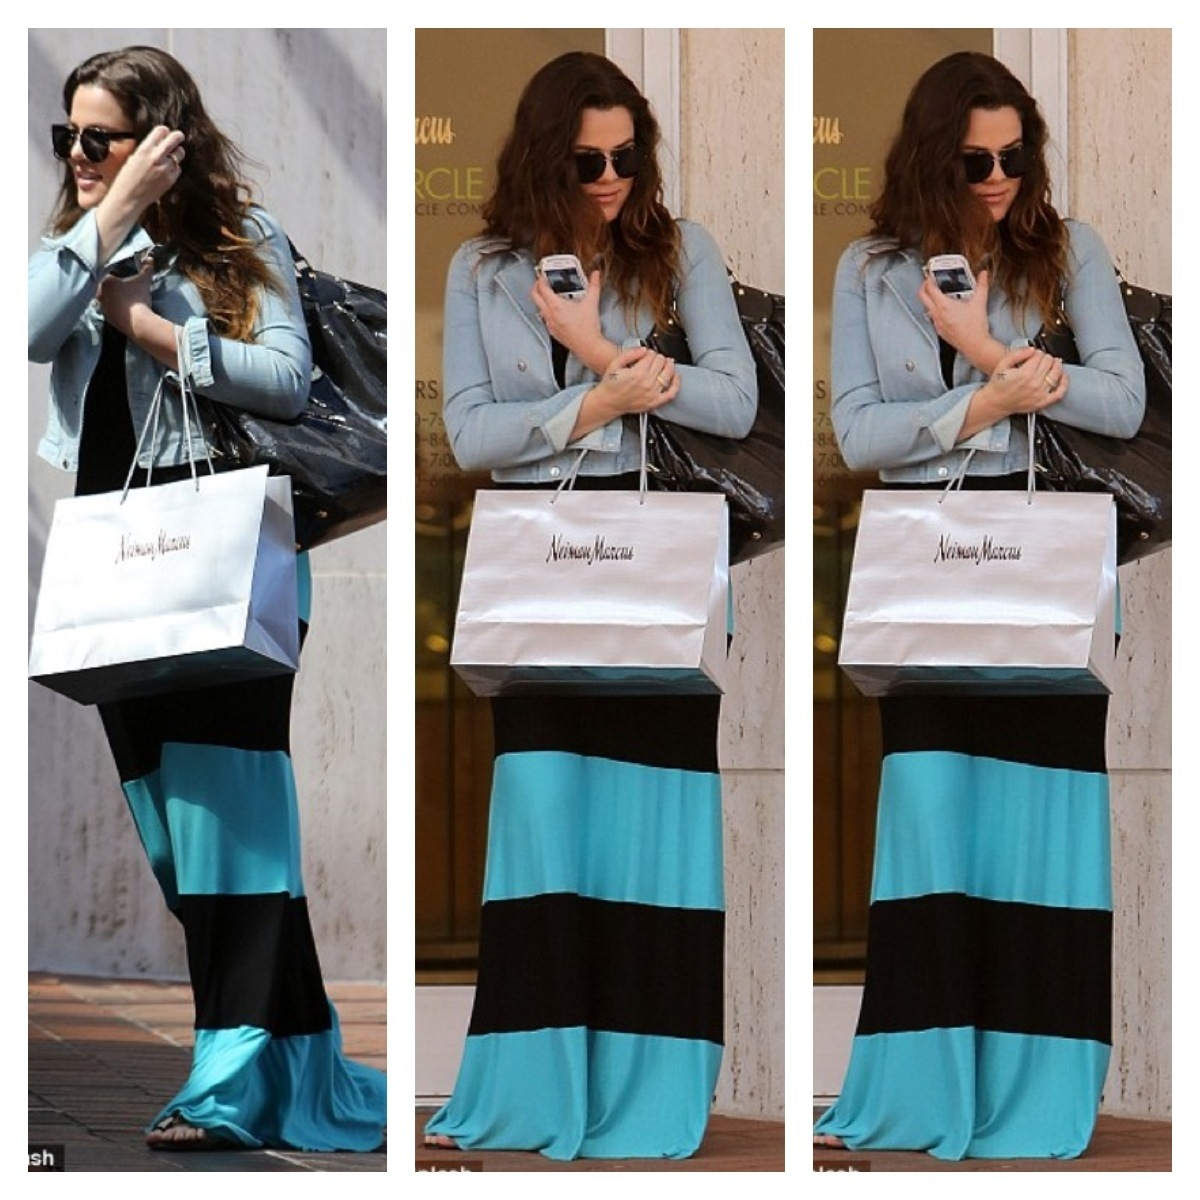 Khloe Kardashian Shopping At Neiman Marcus